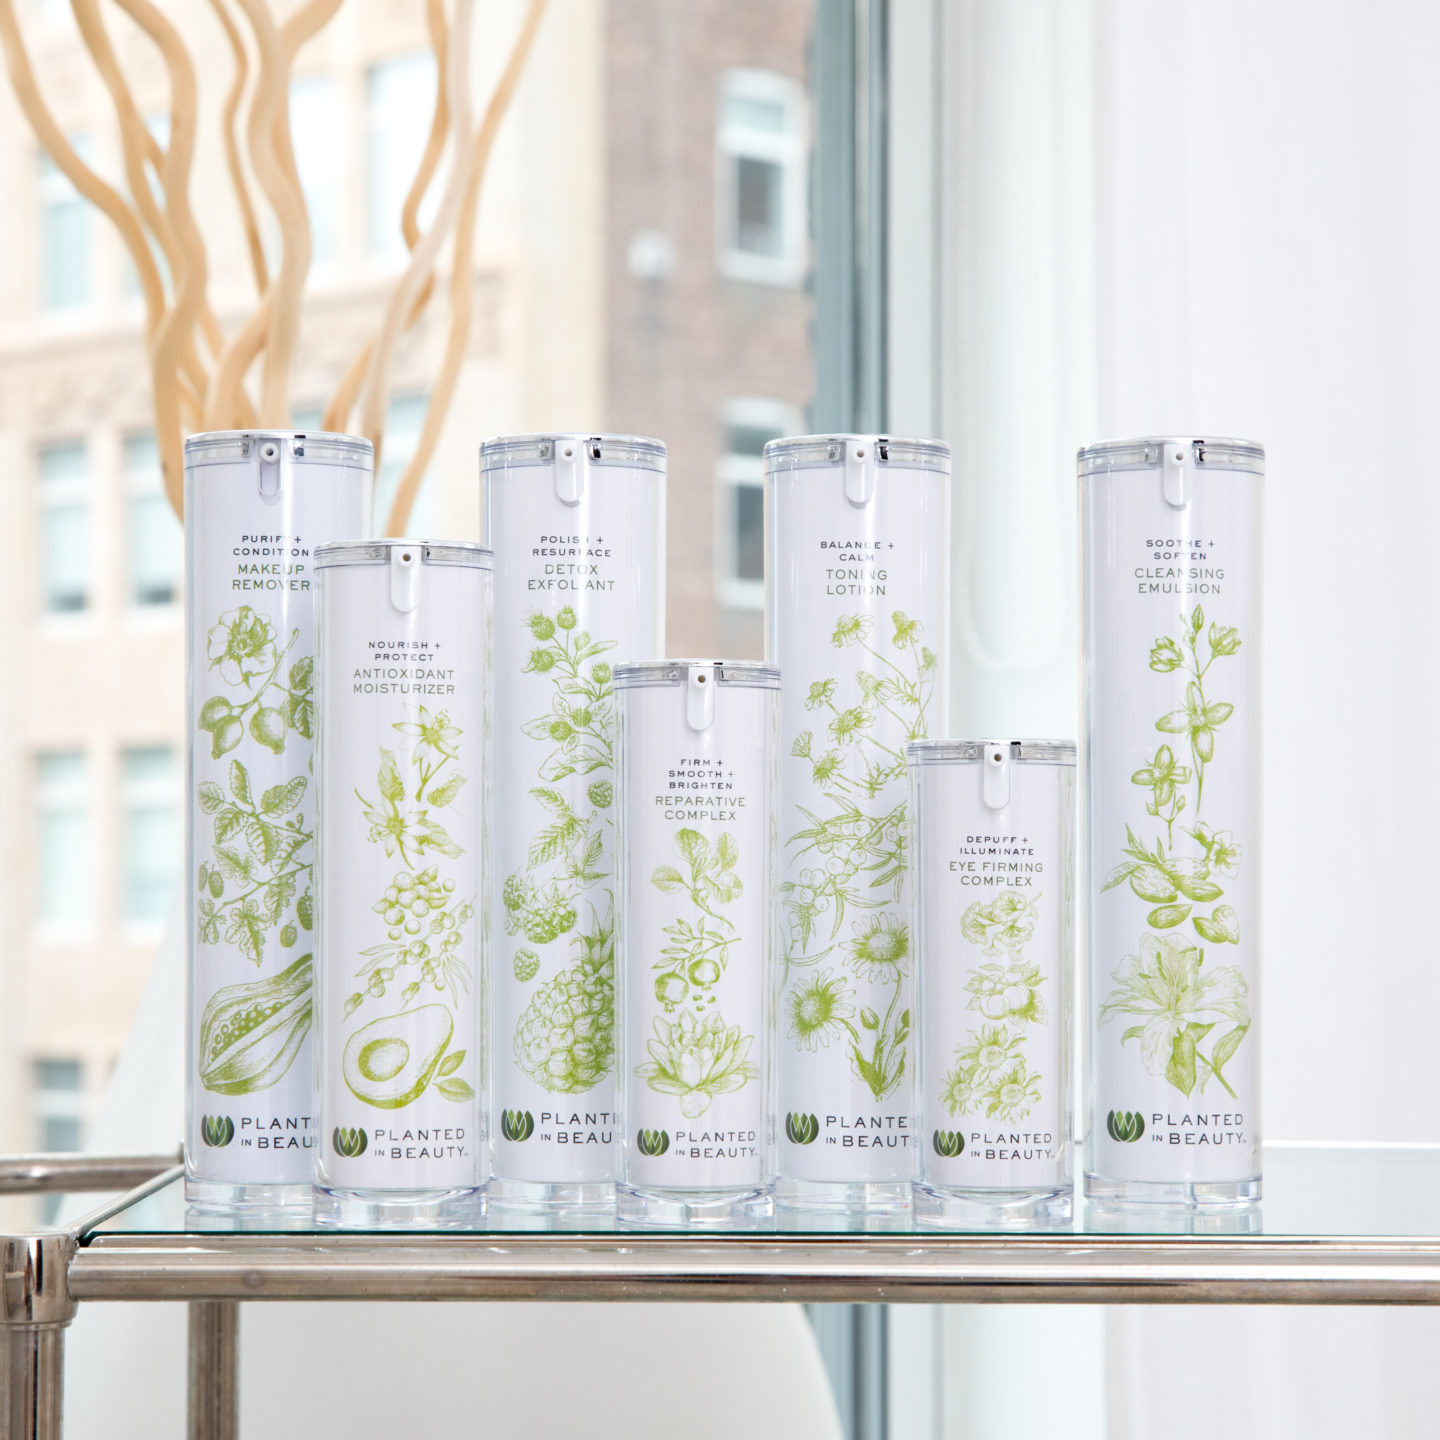 The New Organic Skincare Brand Started by Former LA PRAIRIE Exec's  – WELL WITHIN BEAUTY